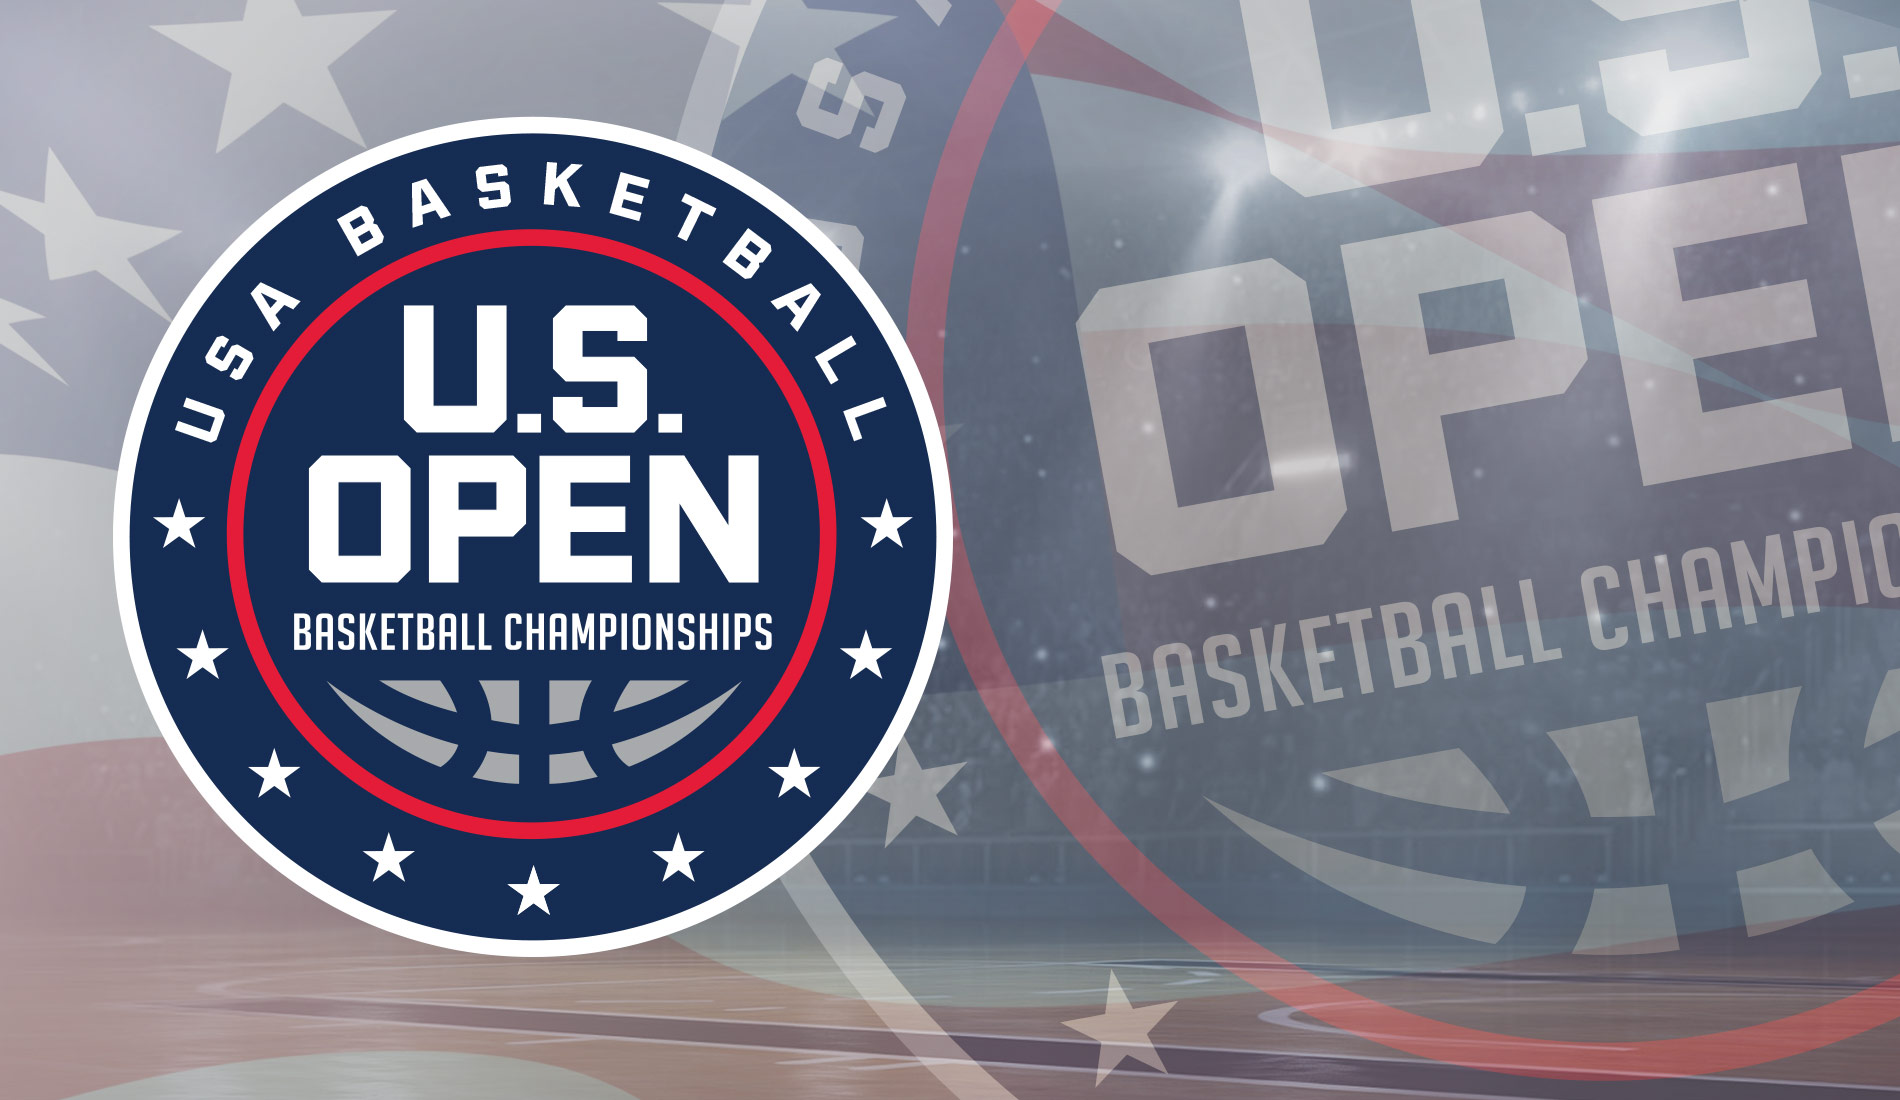 US Open Basketball Championships Graphic